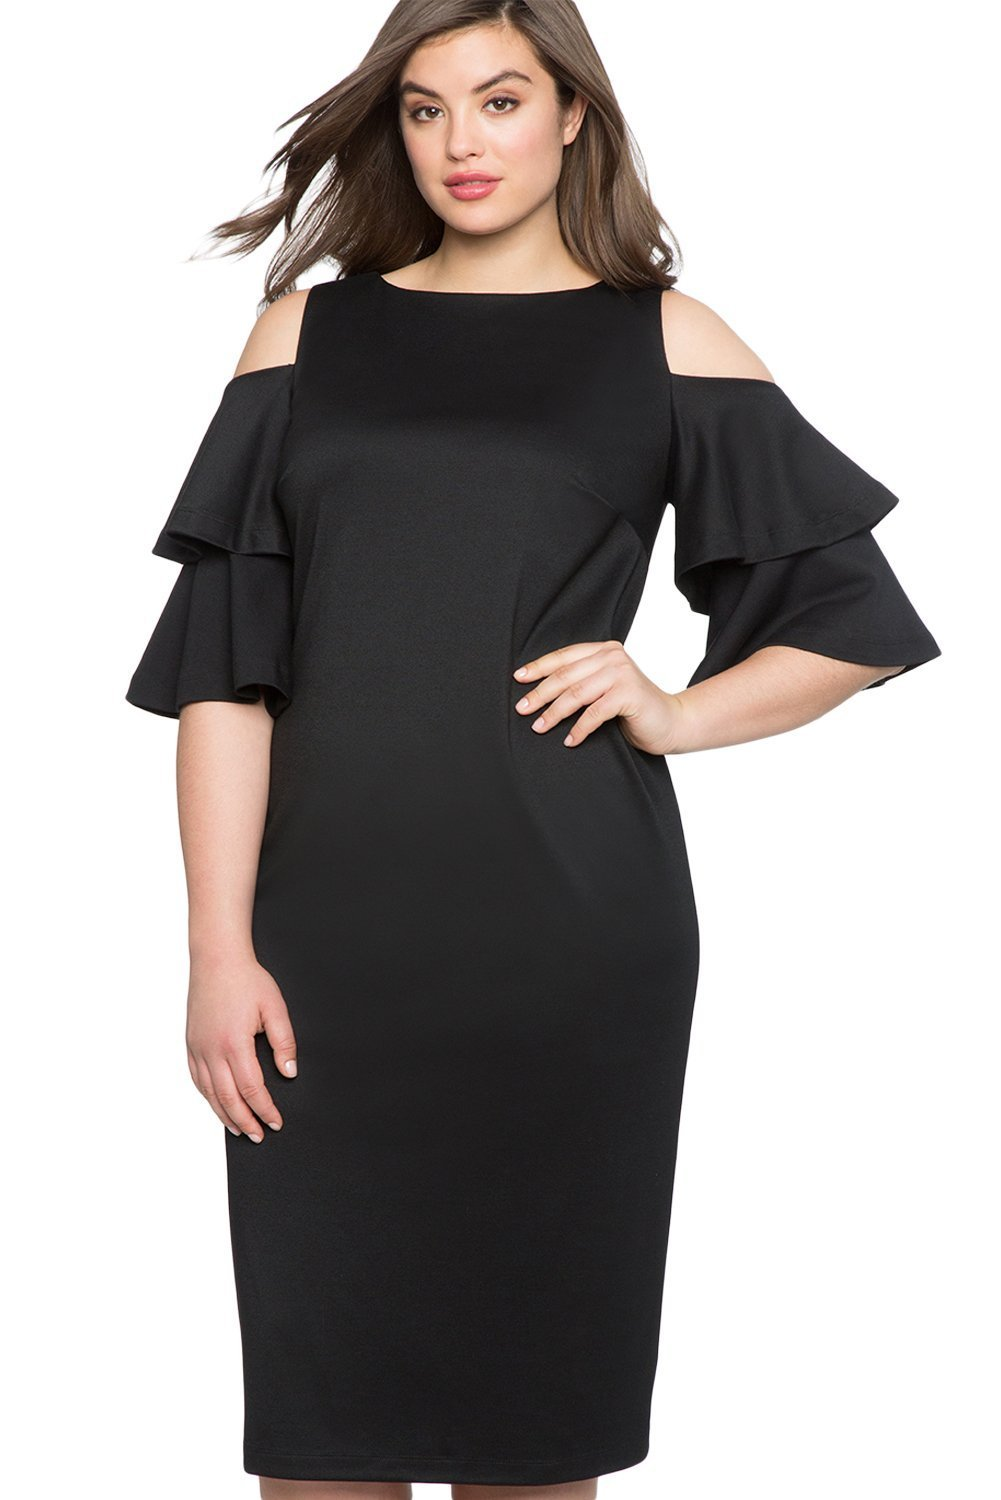 282dff8cf4b3 plus size Off Shoulder Dress XL   AUS 18   Black Krista Cold Shoulder Dress  ...